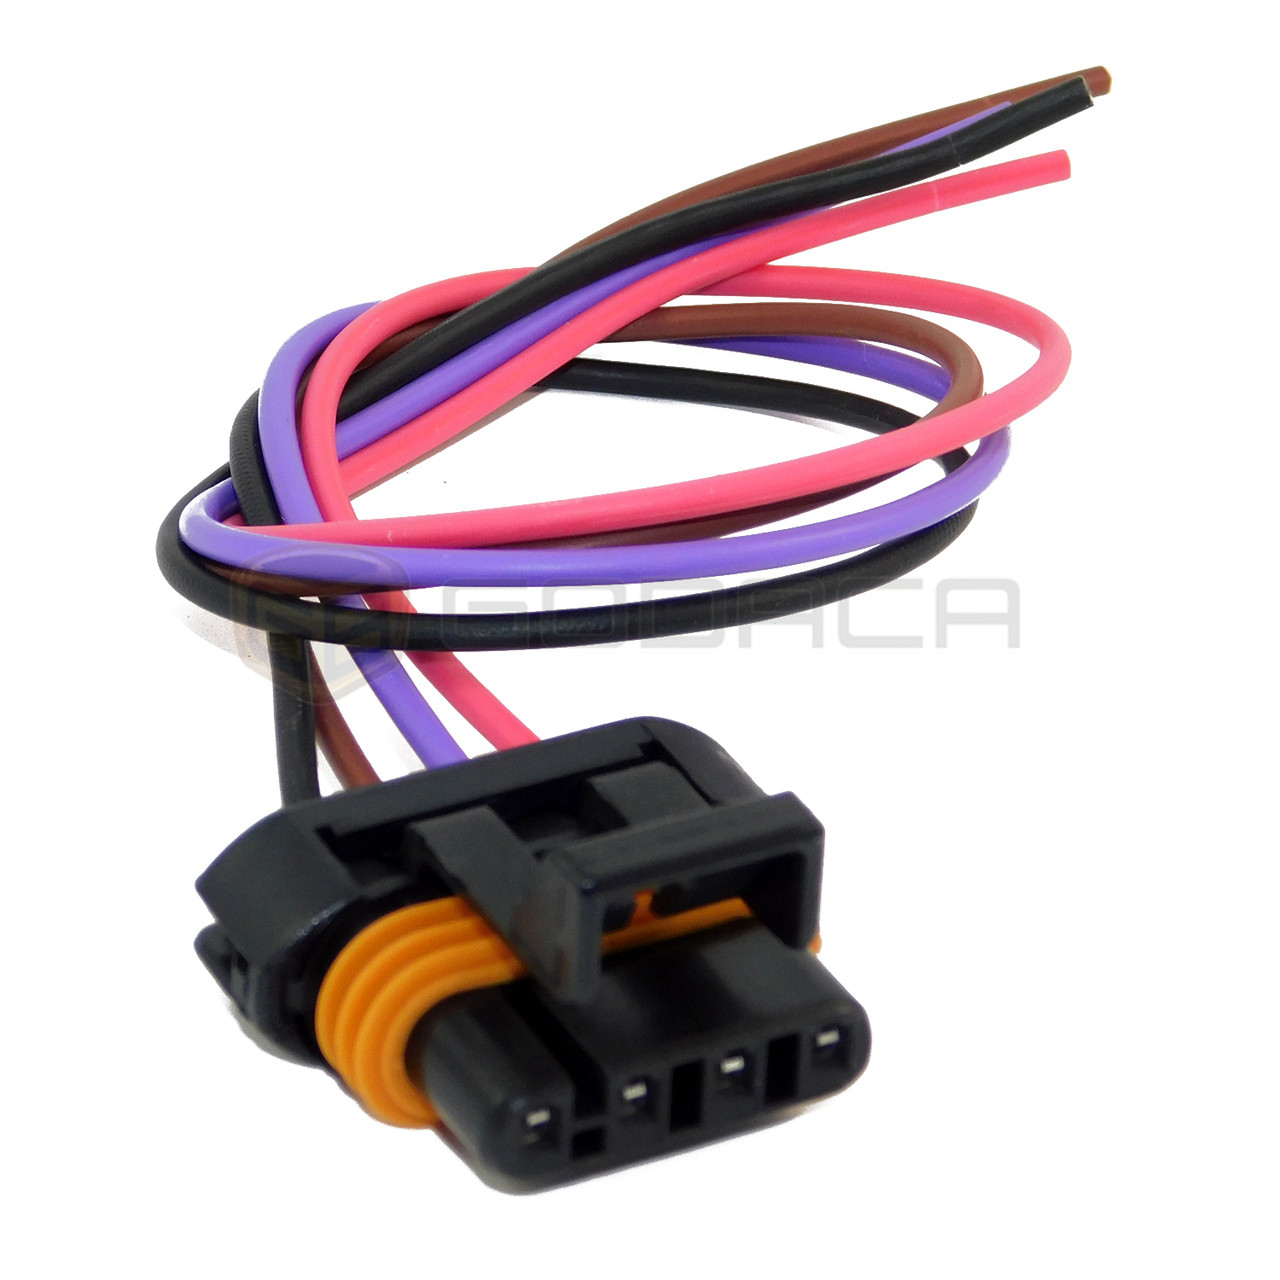 1 x ls1 ls6 ignition coil wiring harness pigtail connector gm camaro corvette Ls6 Wiring Harness 8 ls2 ls3 ls7 ev6 engine wire harness